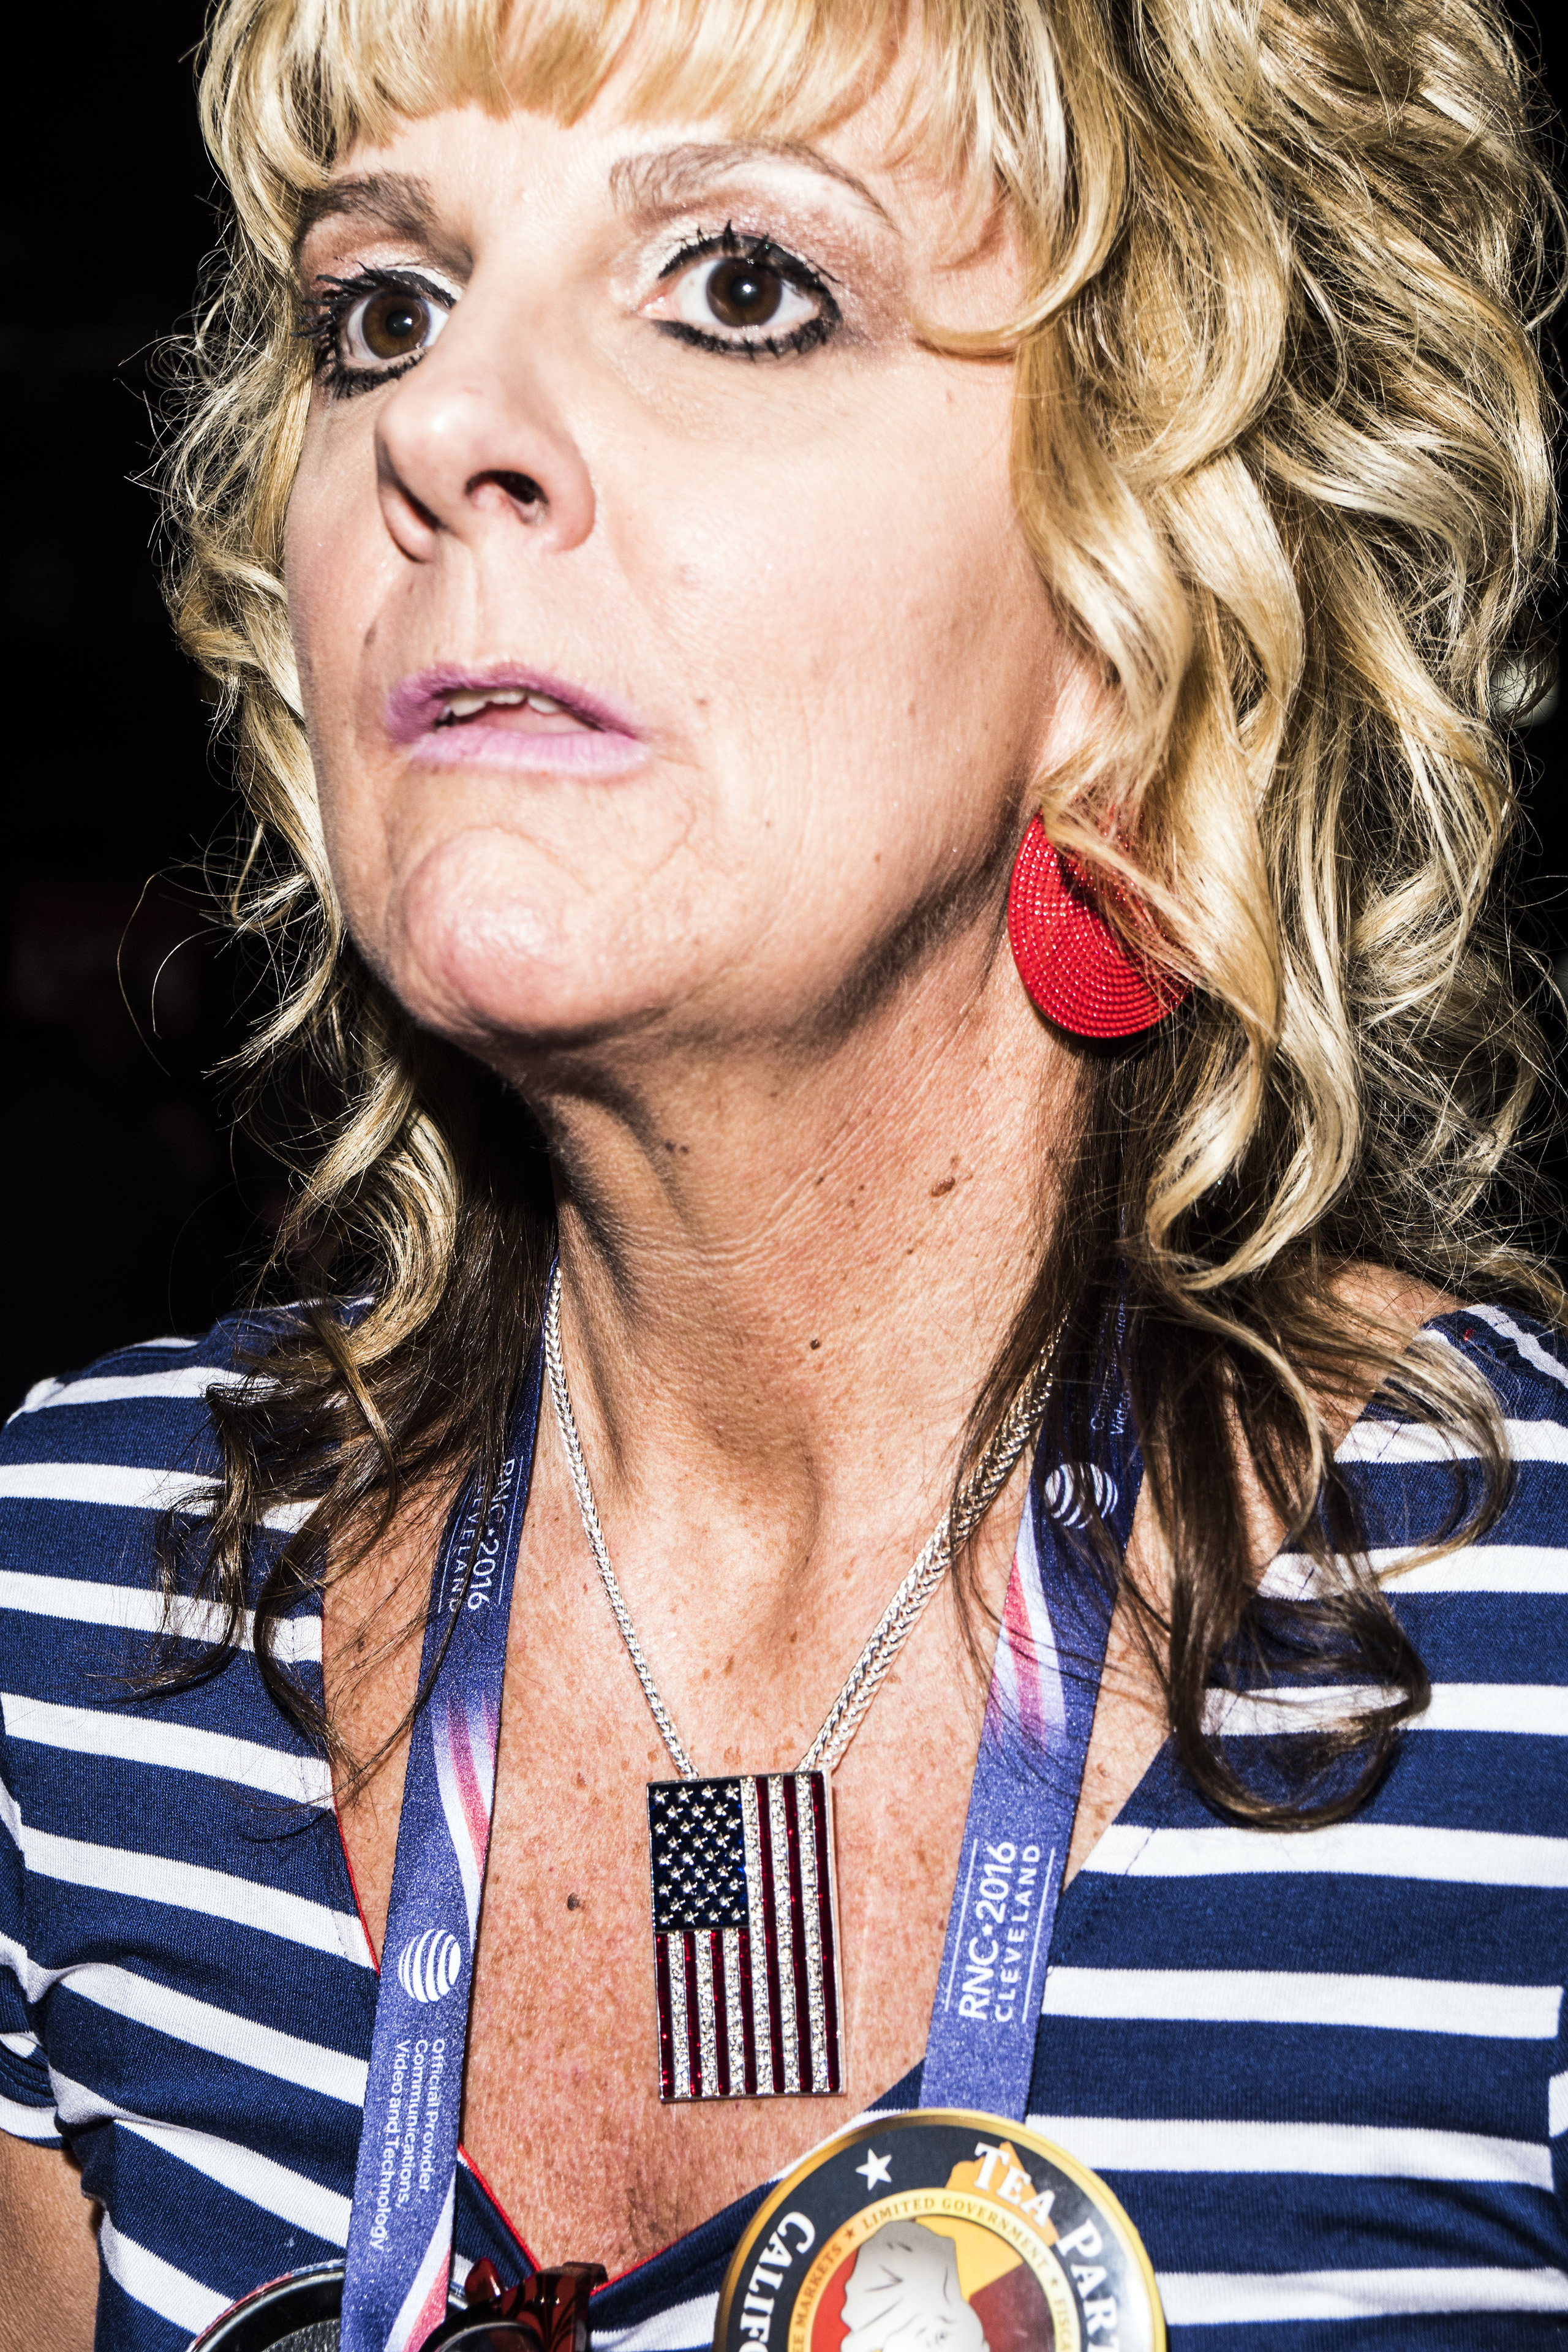 Donald Trump supporter at the Republican National Convention on July 19, 2016, at the Quicken Loans Arena in Cleveland, Ohio.